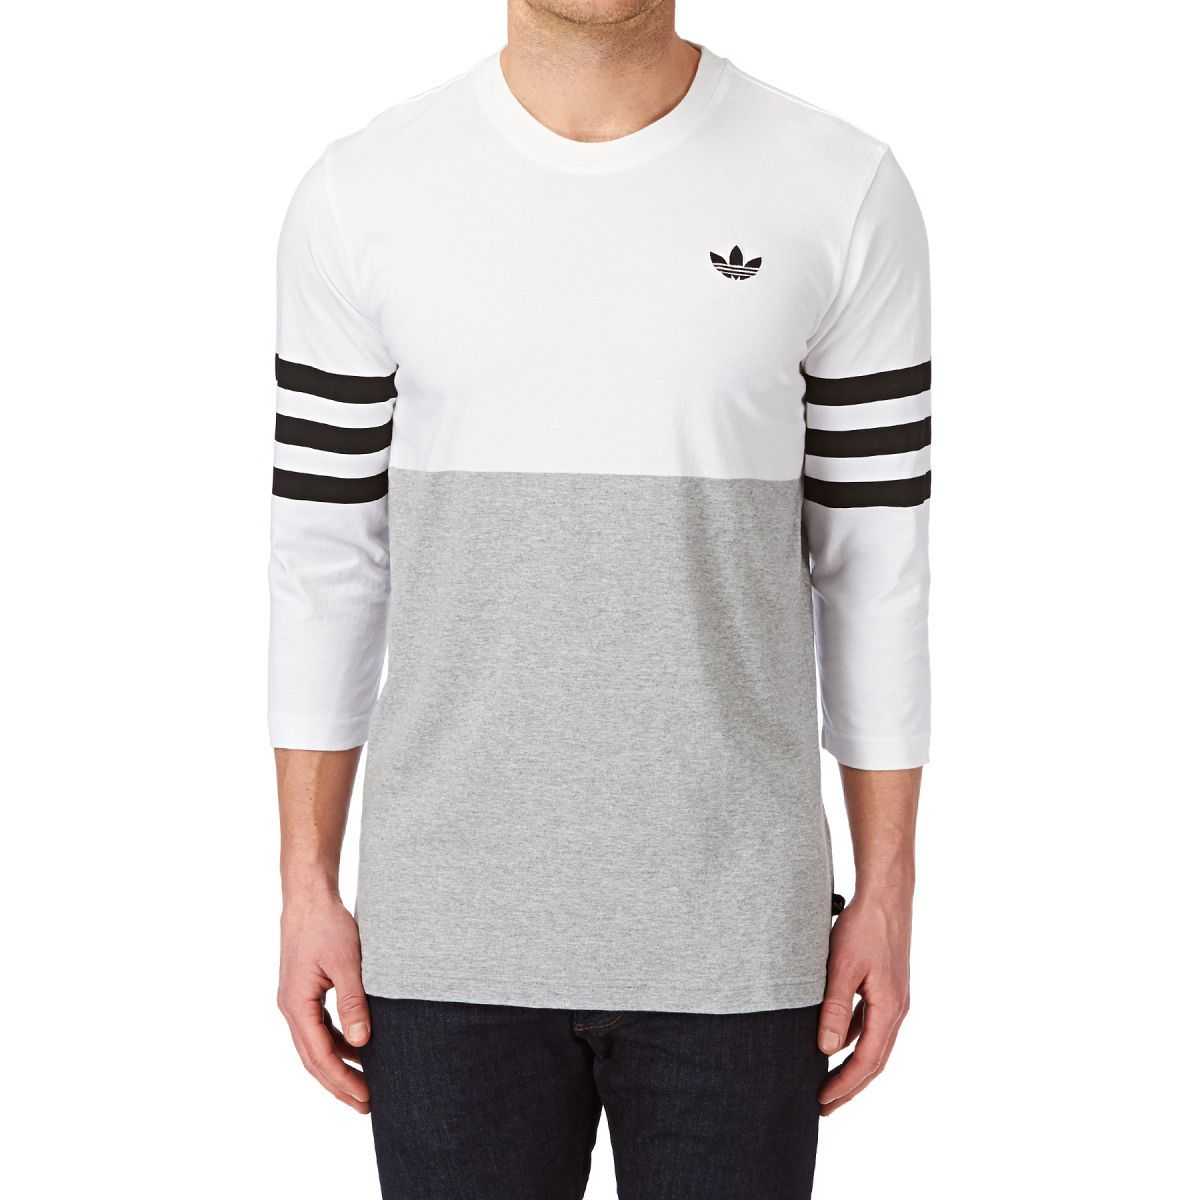 adidas originals stripesback long sleeve t shirt white men 39 s fave threads pinterest. Black Bedroom Furniture Sets. Home Design Ideas